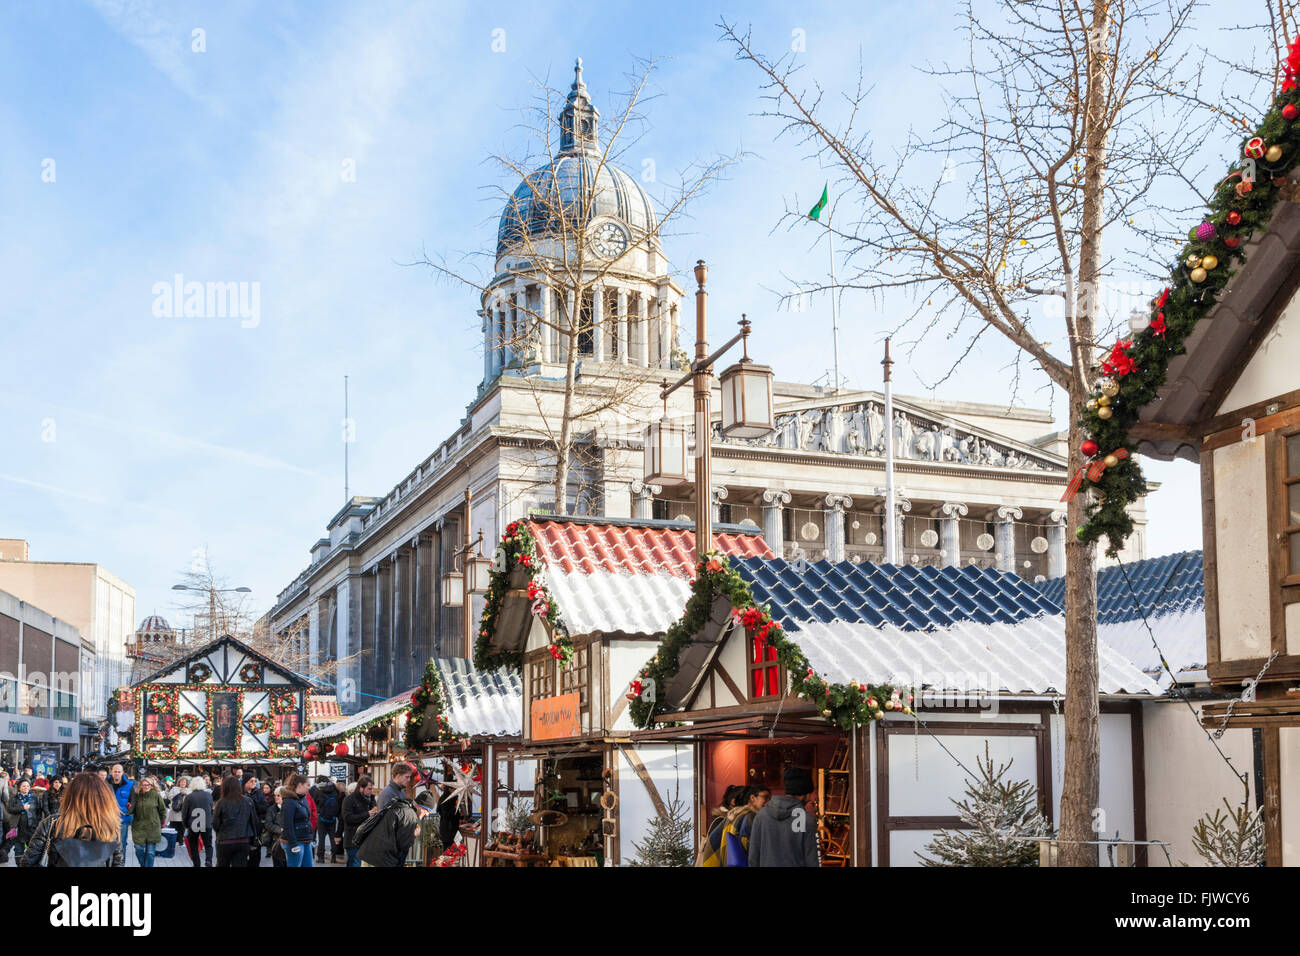 The Nottingham Christmas Market with the Council House in the background. The Old Market Square, Nottingham, England, - Stock Image